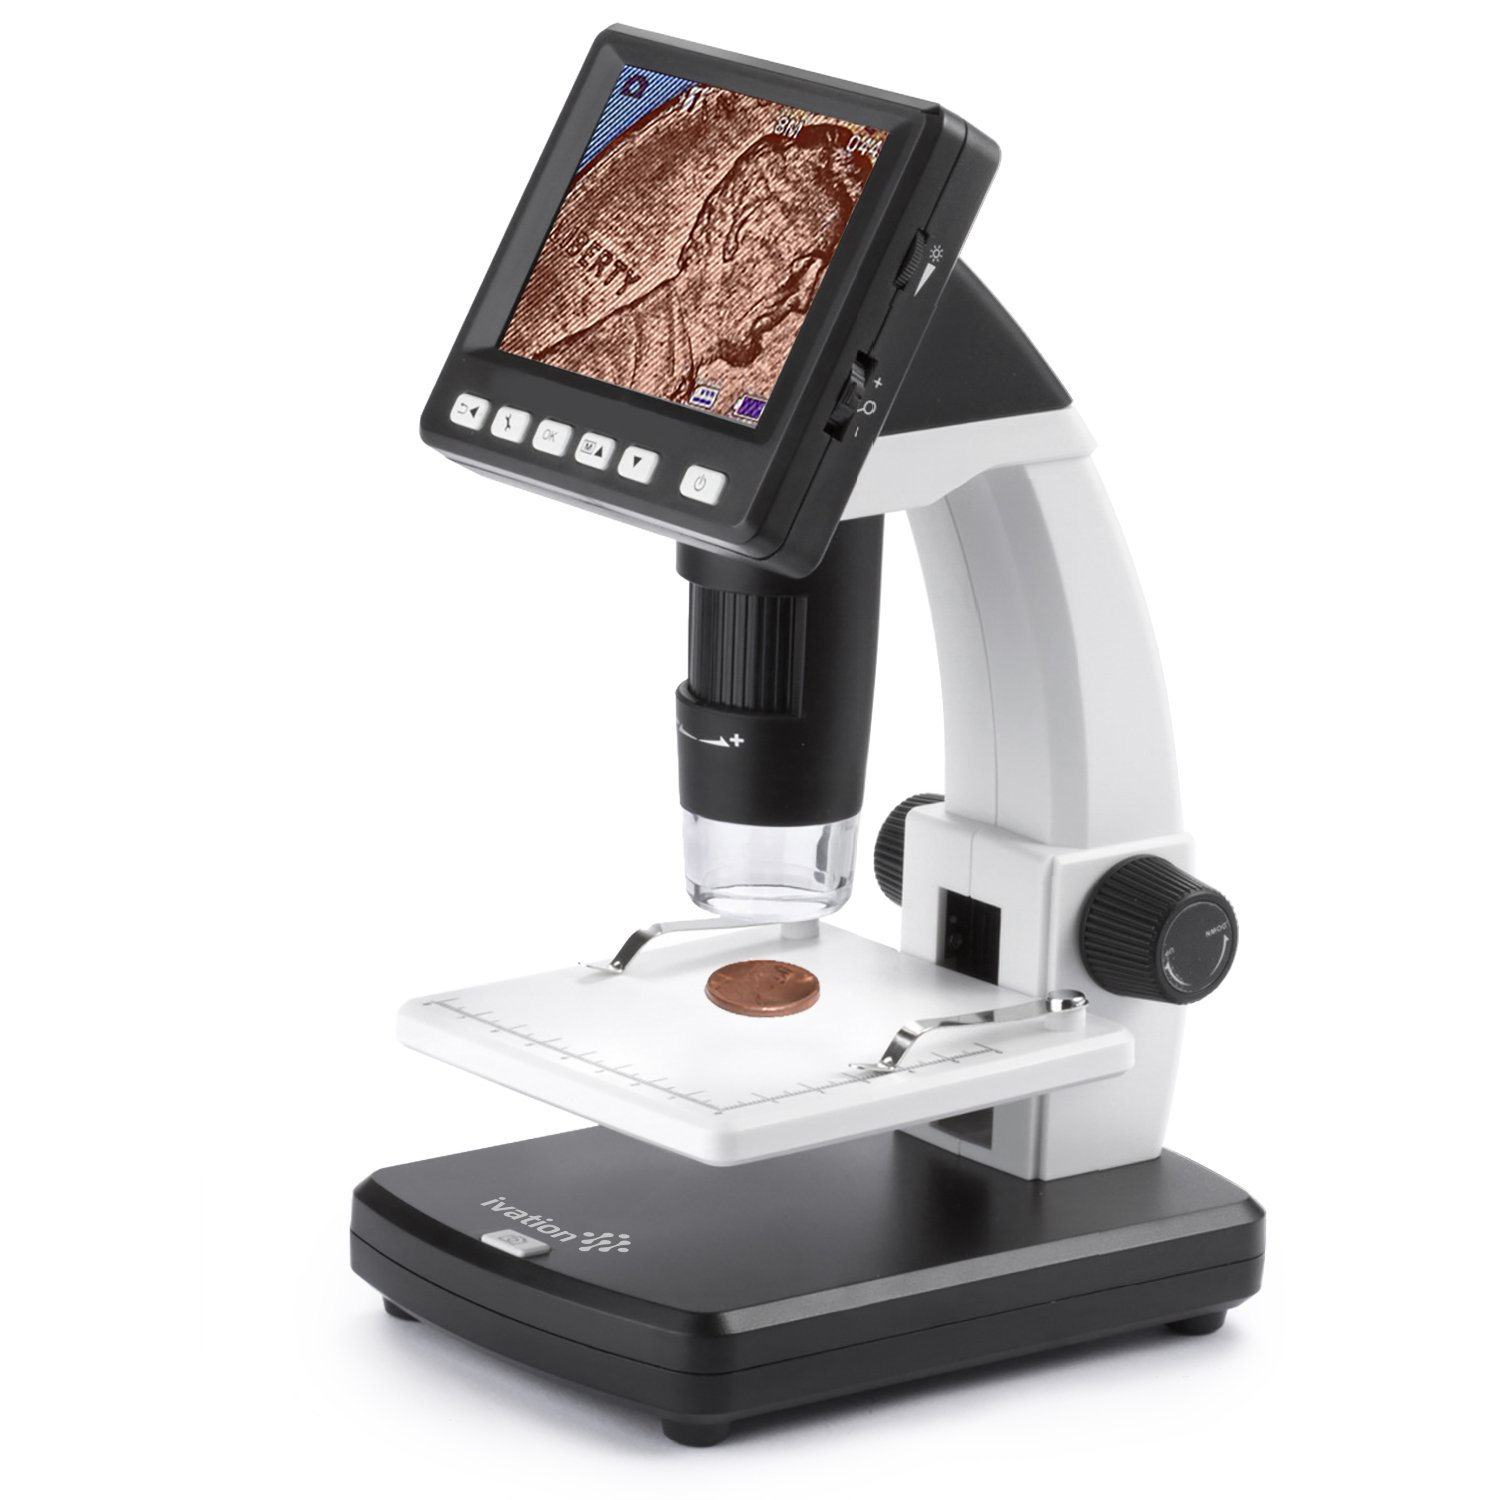 Ivation Portable Digital HD LCD Microscope - Rechargeable 14MP Microscope w/220x Optical & 500x Digital Magnification, HD Sensor, 3.5'' LCD Screen, Adjustable Stage, Photo/Video Capture, HDMI & More by Ivation